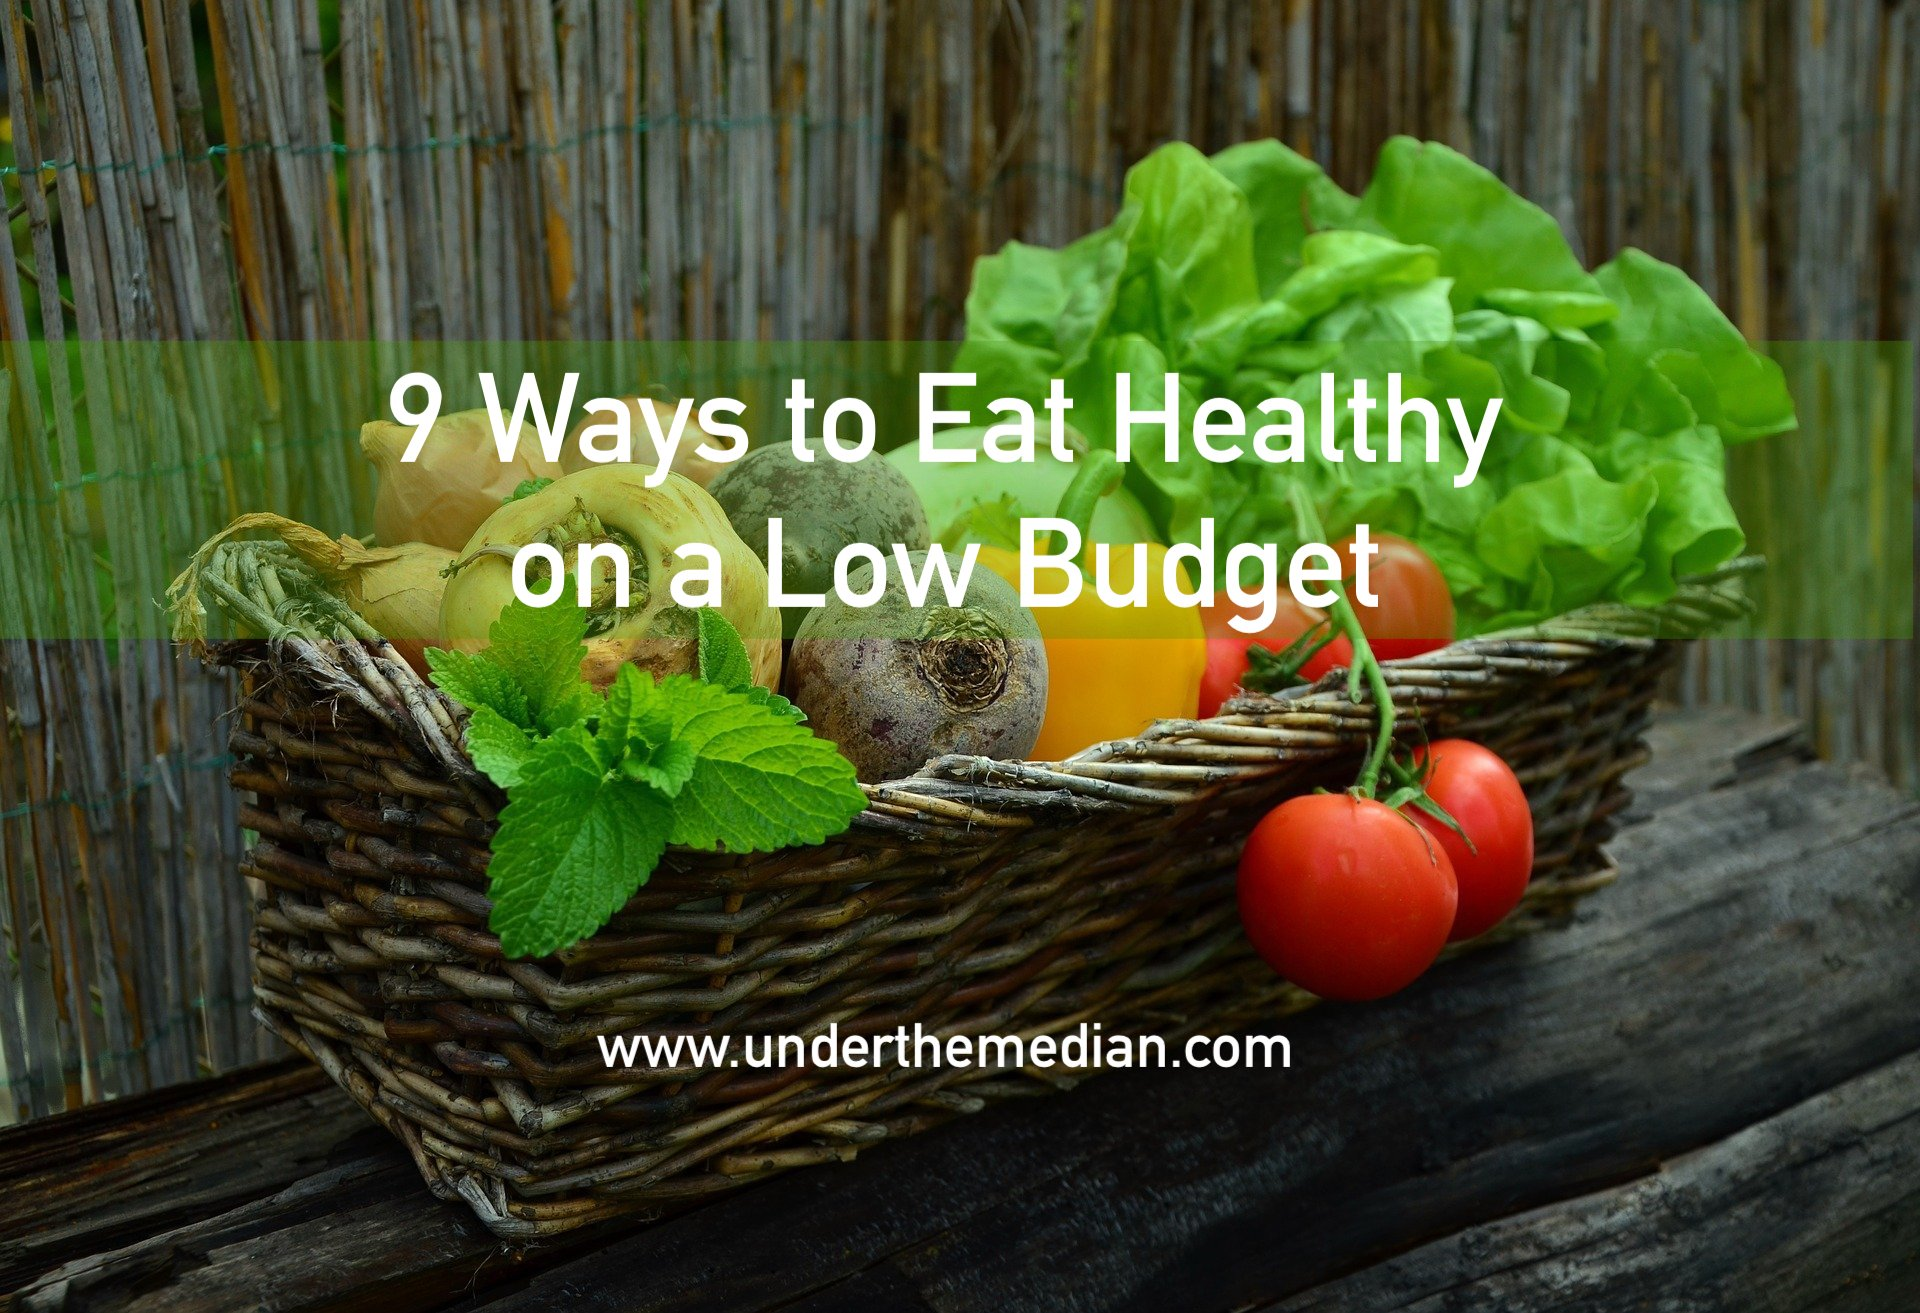 9 Unbelievably Easy, Budget-Friendly Ways to Eat Healthy